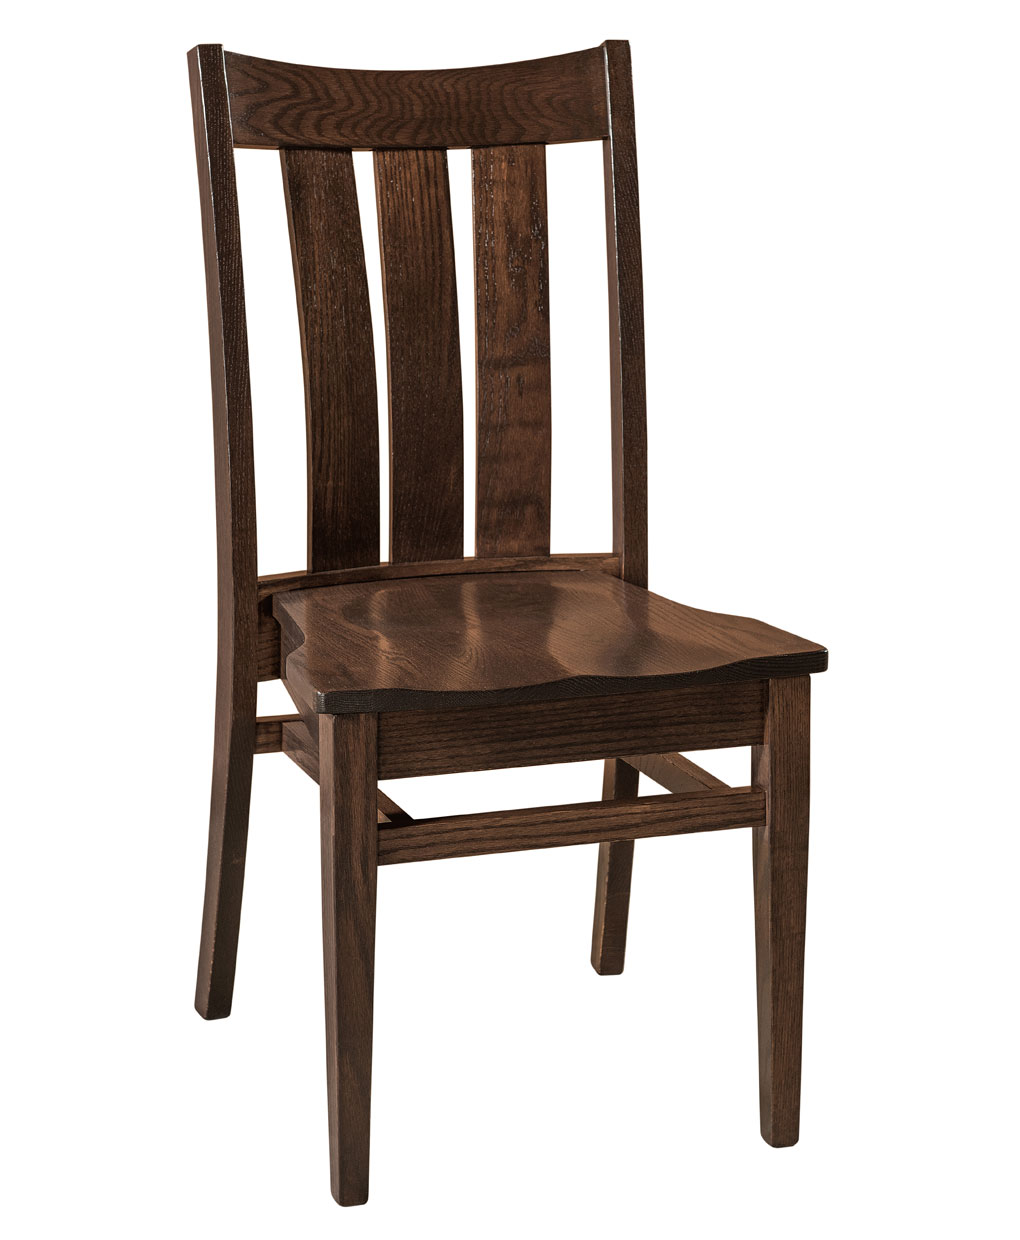 Lamont Amish Stacking Chair